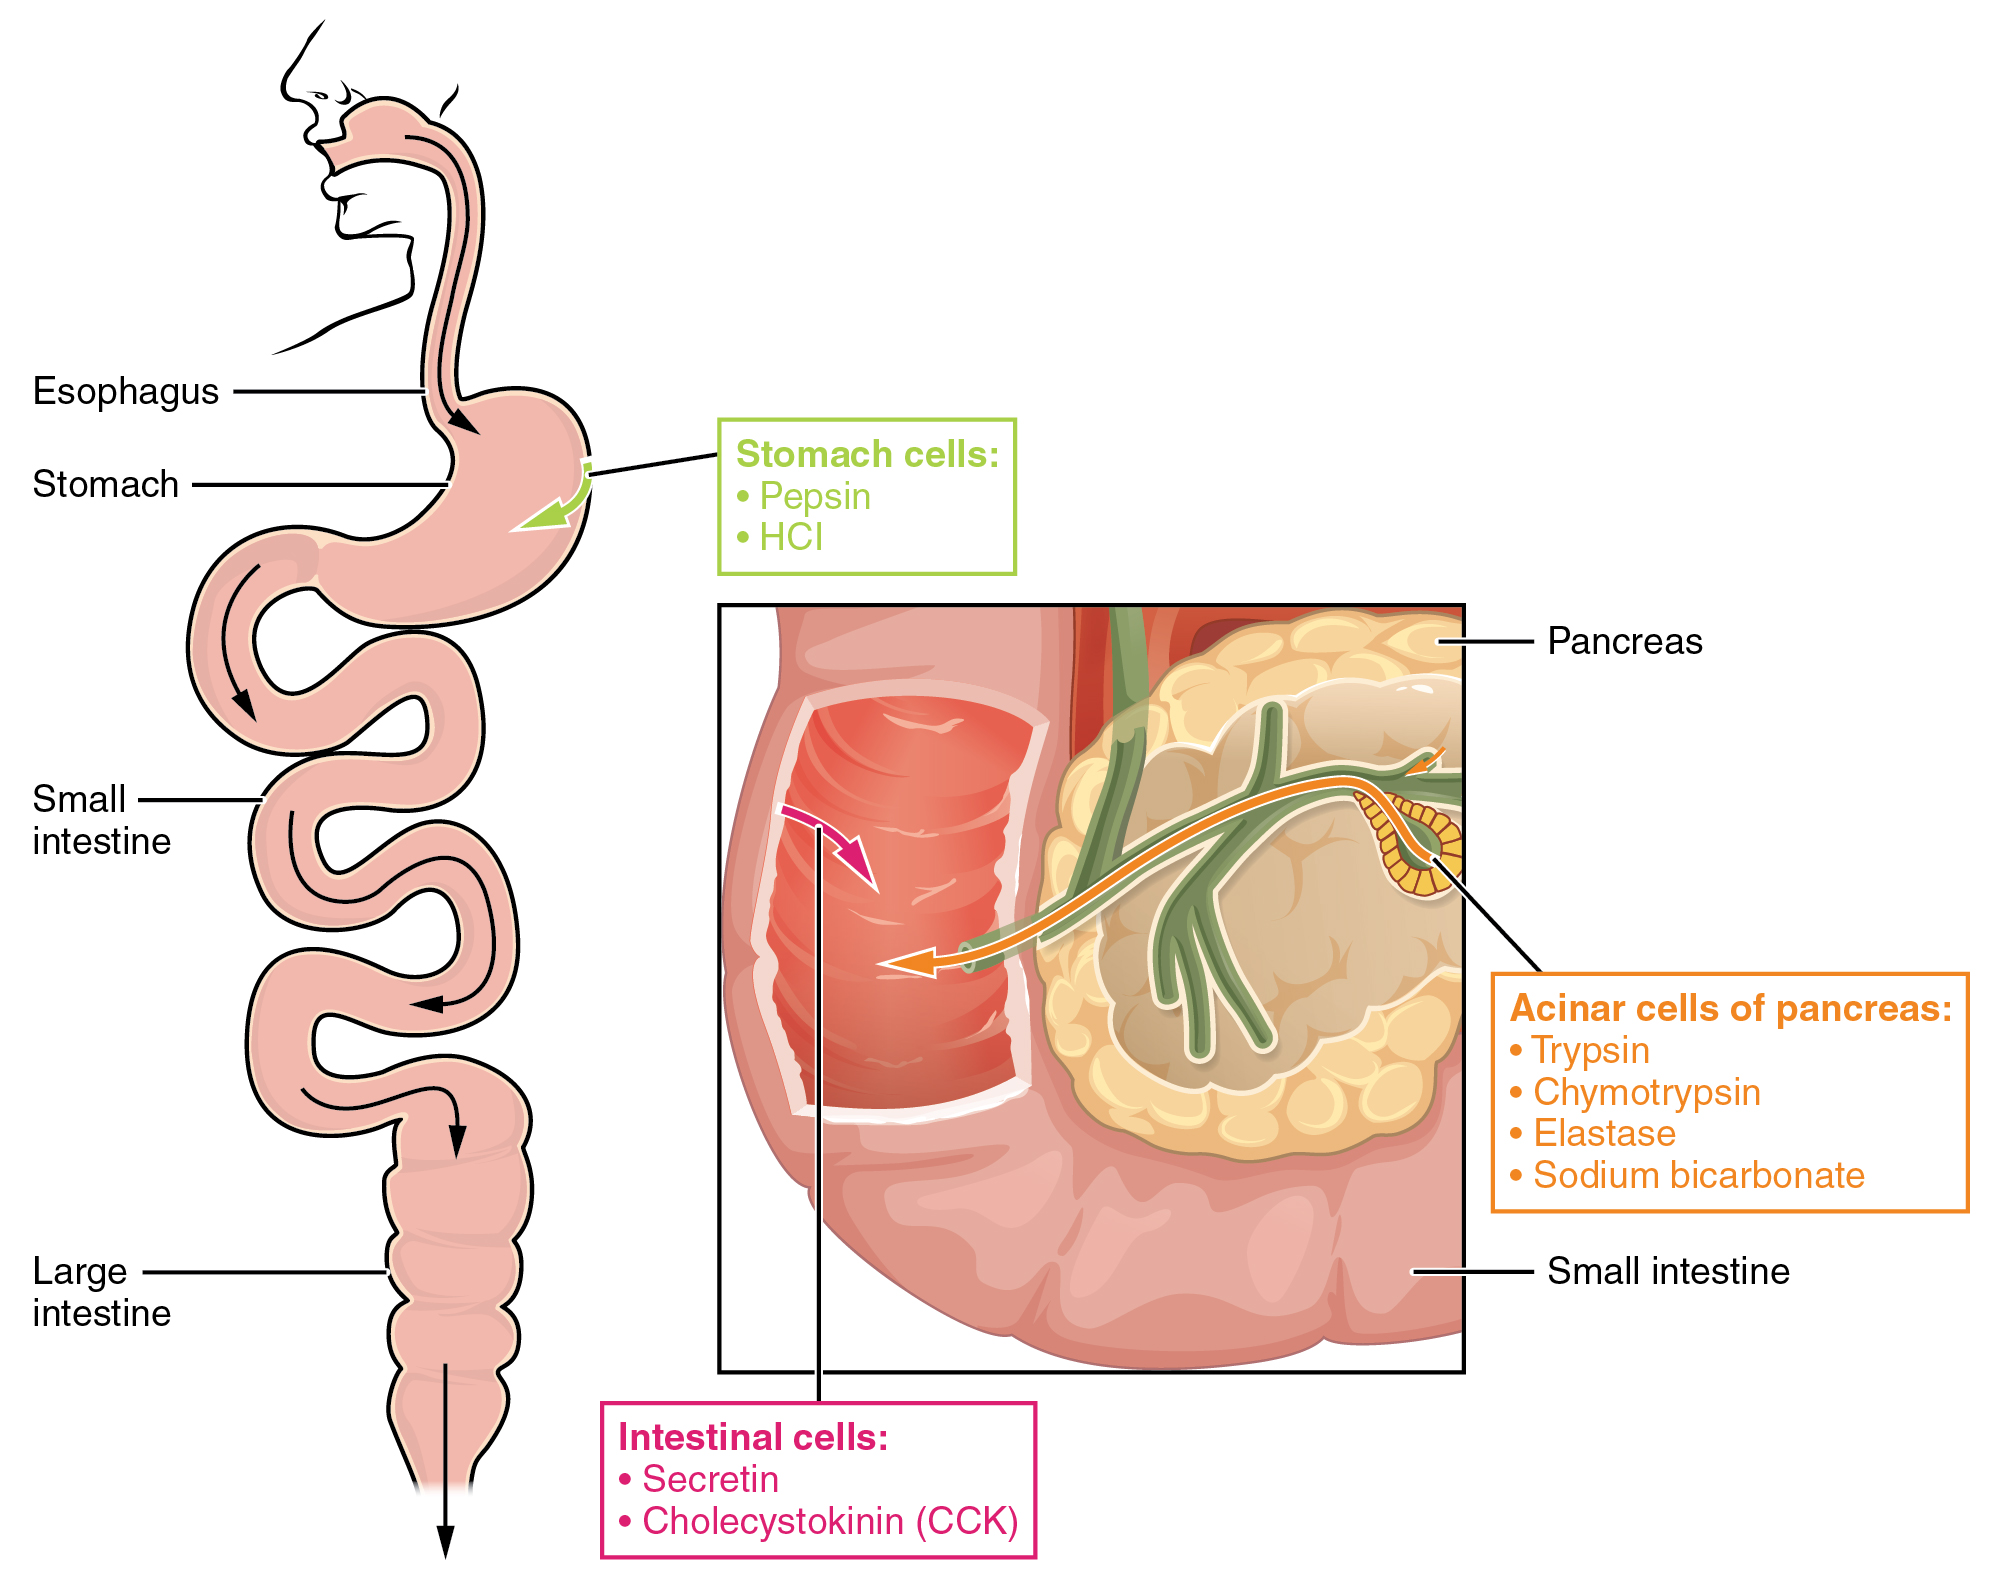 hight resolution of the left panel shows the main organs of the digestive system and the right panel